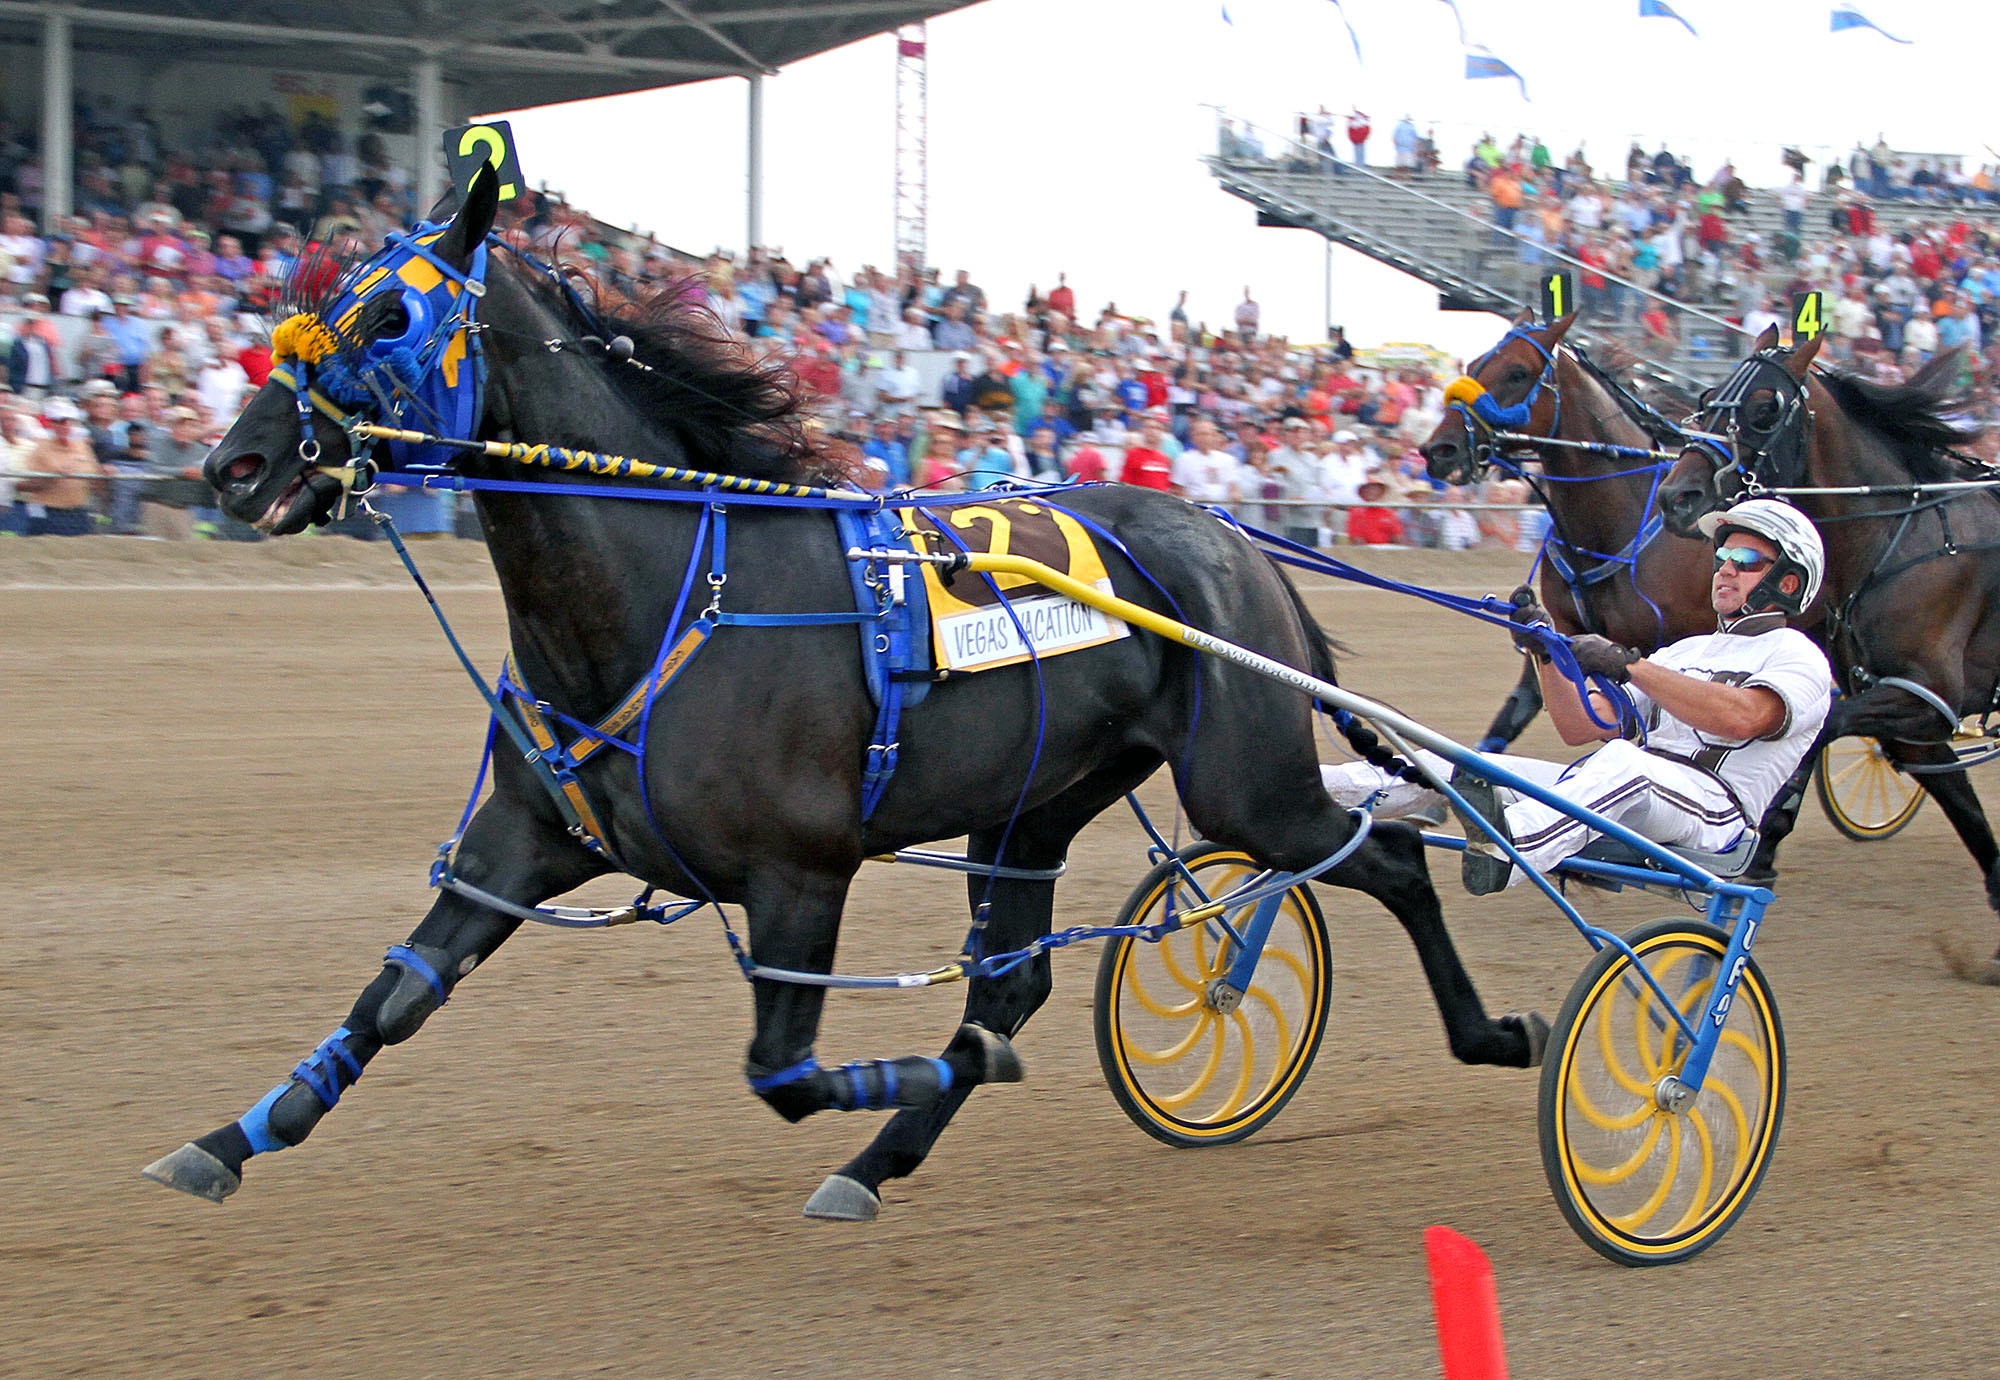 Driver Brian Sears crosses the finish line with Vegas Vacation to win the Little Brown Jug harness race for three-year-old pacers at the Delaware County Fairgrounds in Delaware, Ohio, Thursday, Sept. 19, 2013